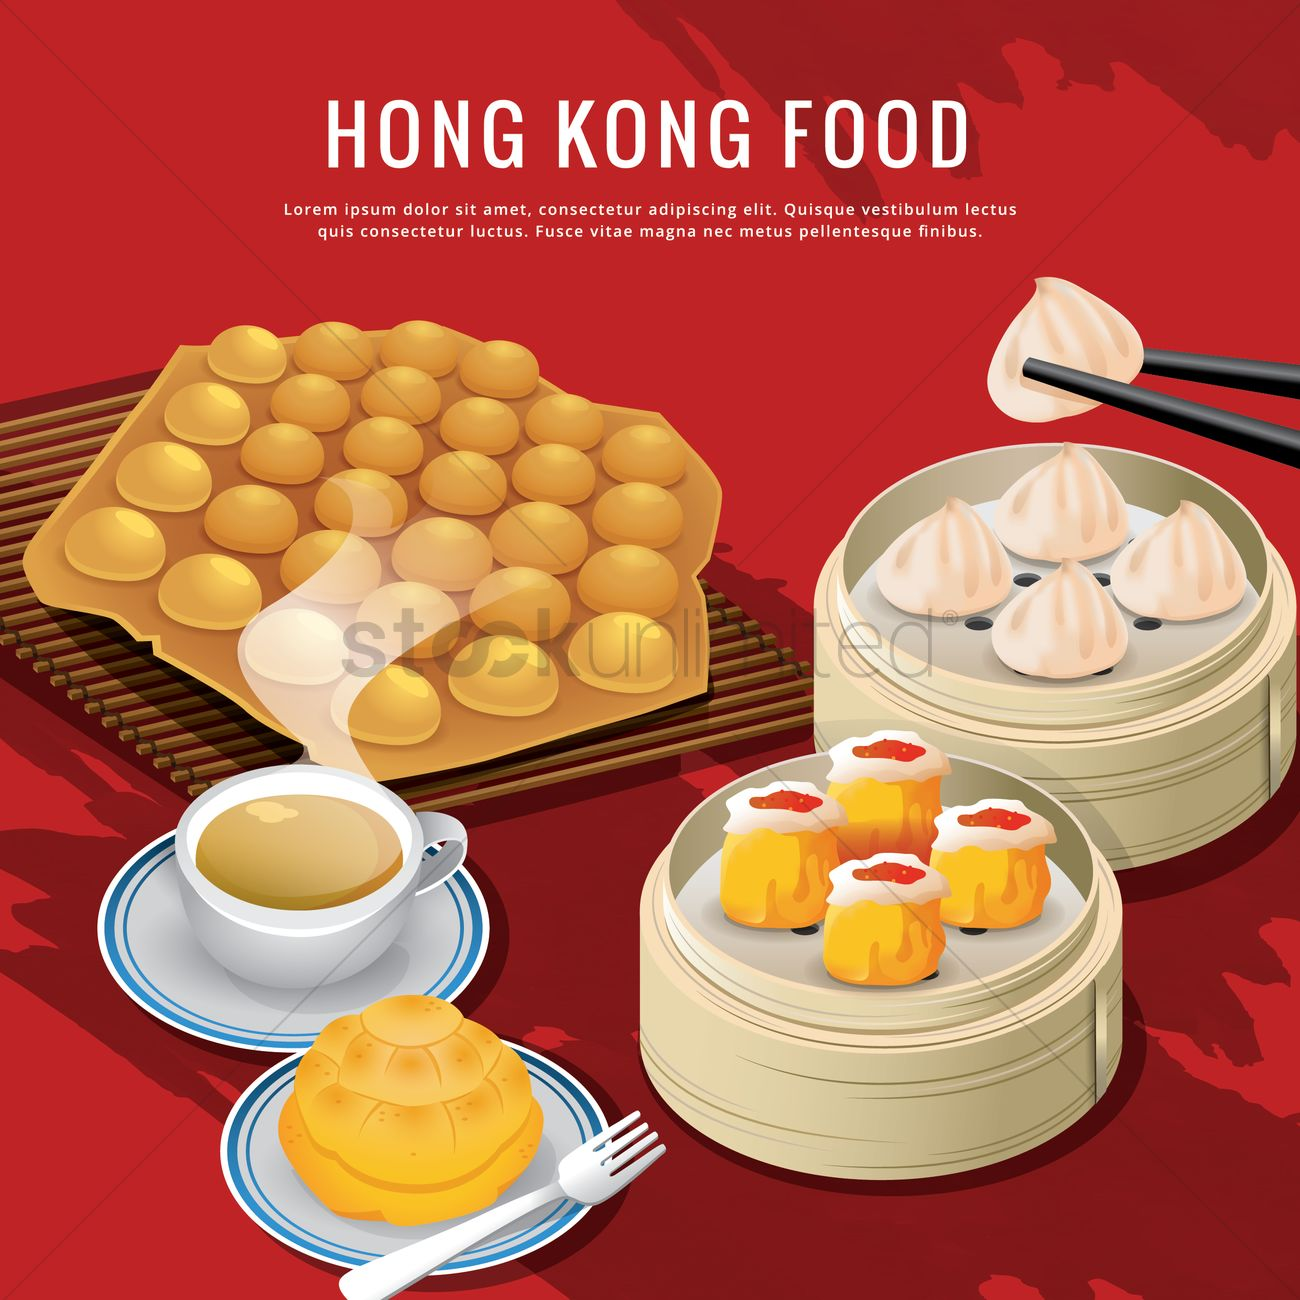 Hong kong food vector image 1594434 stockunlimited for Cuisine x hong kong margaret